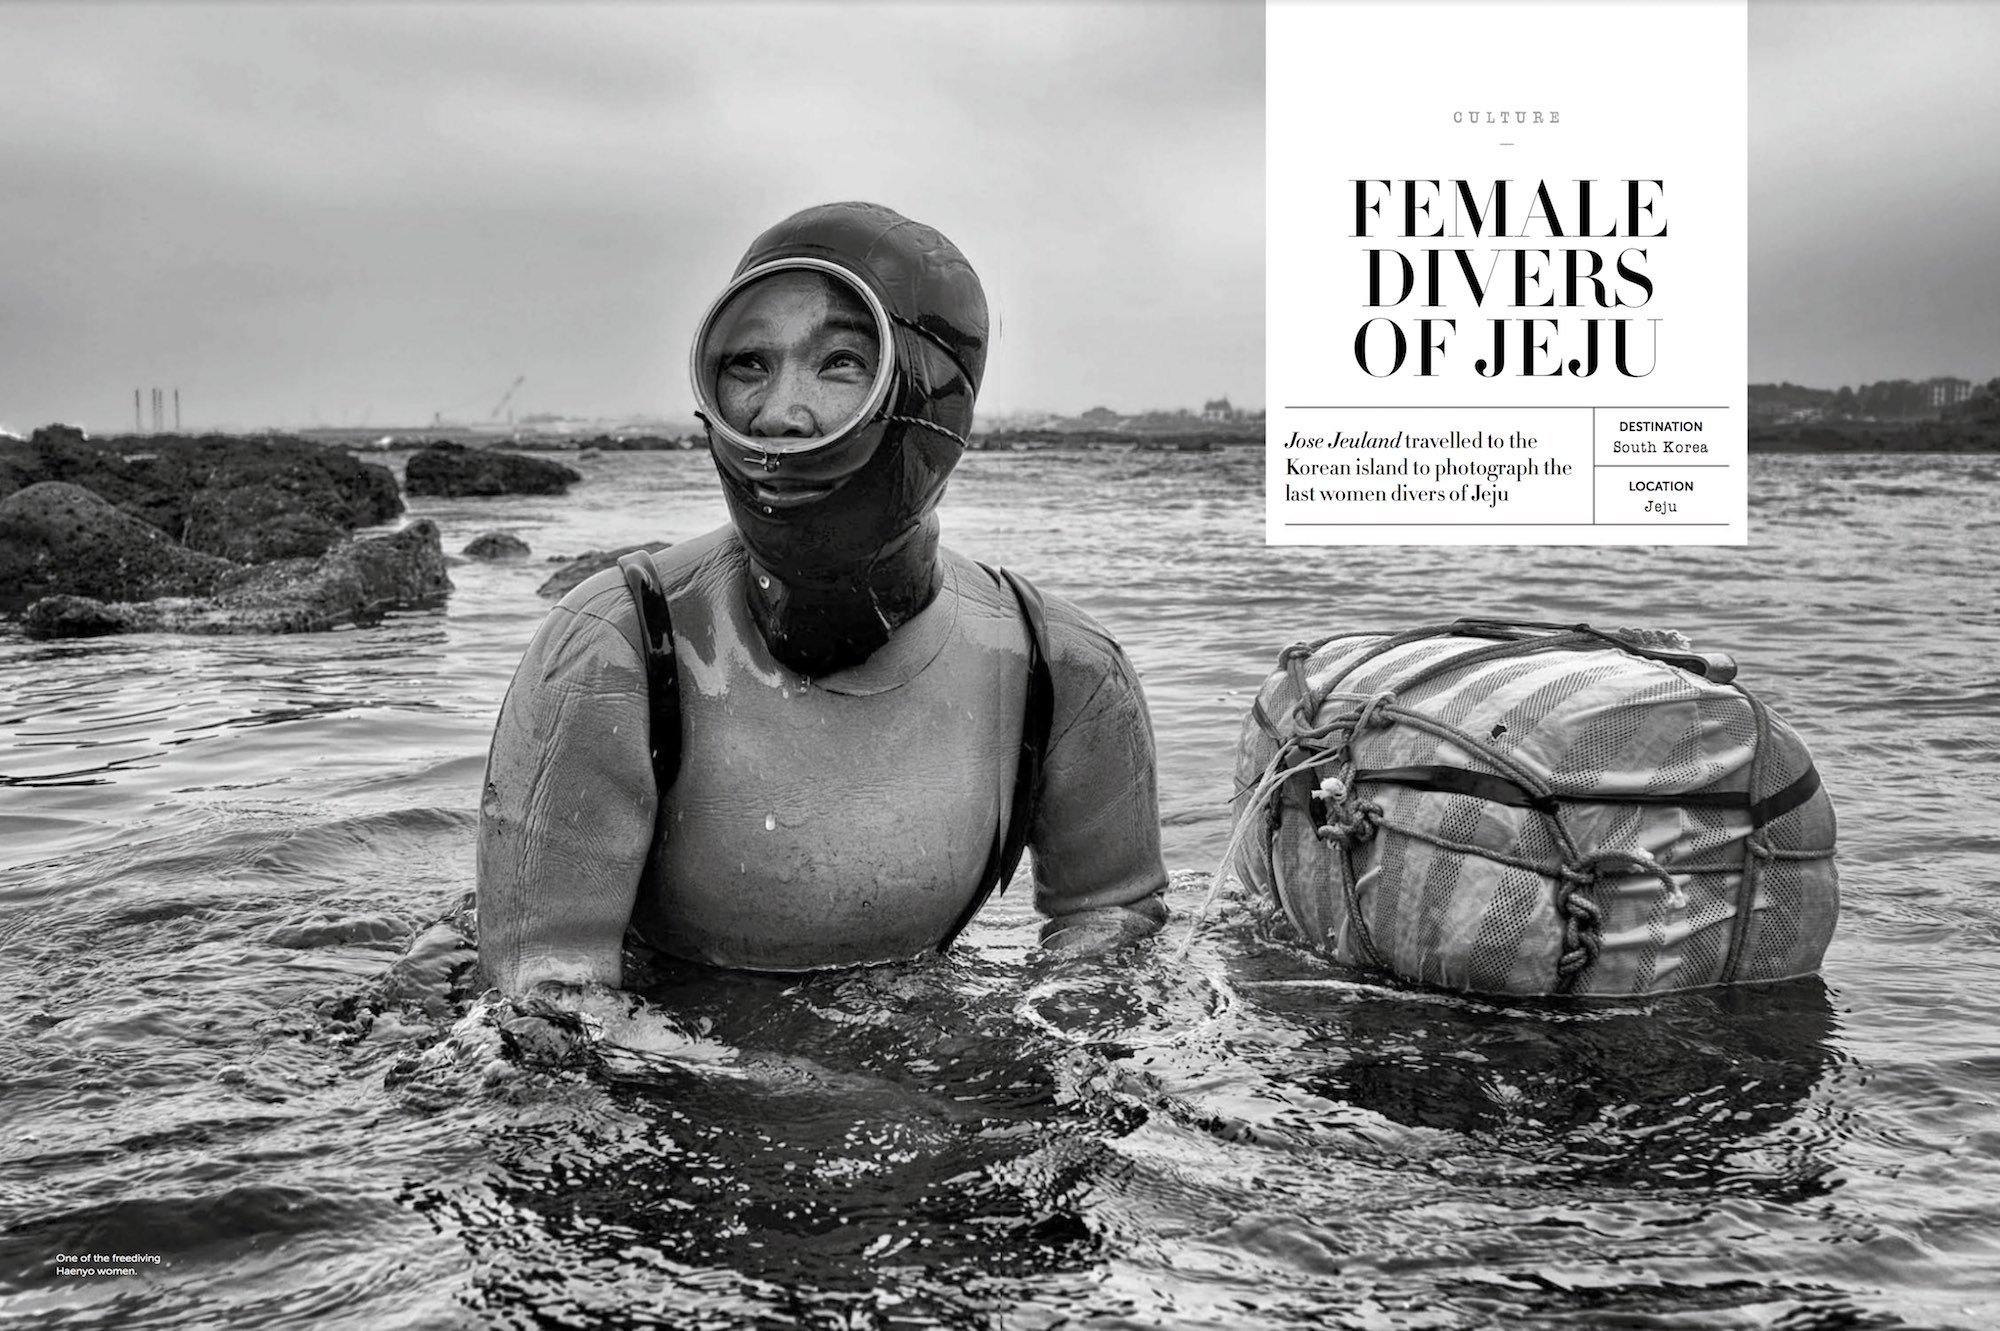 TRAVEL, LIGHTFOOT, Magazine, Jose, Jeuland, Haenyeo, reportage, jeju, south, Korea, photography, photo, photographer, women, diver,